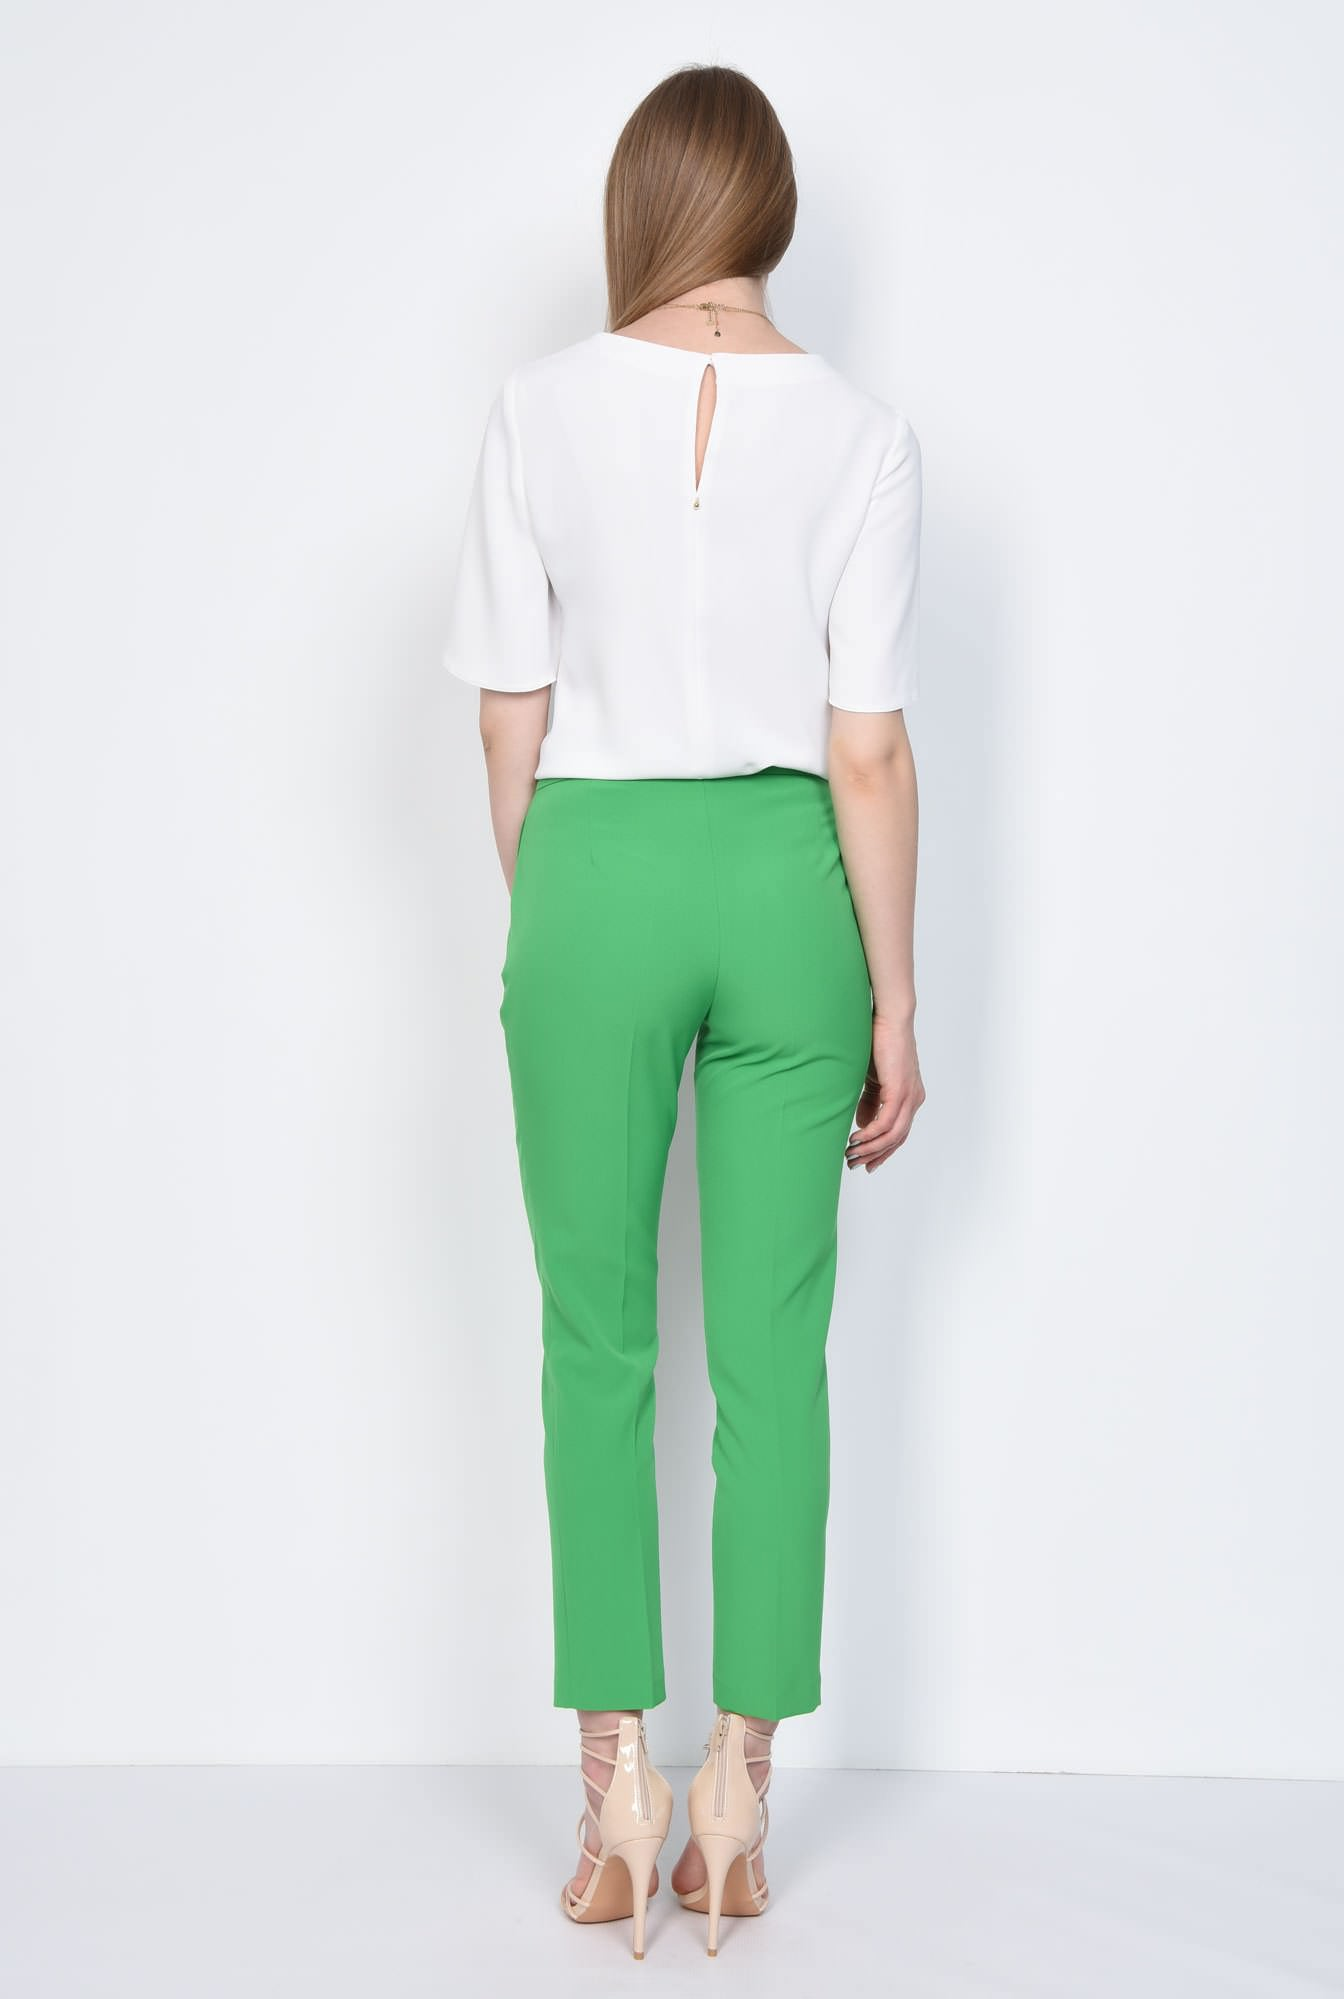 1 - PANTALON OFFICE CONIC PT 142-VERDE